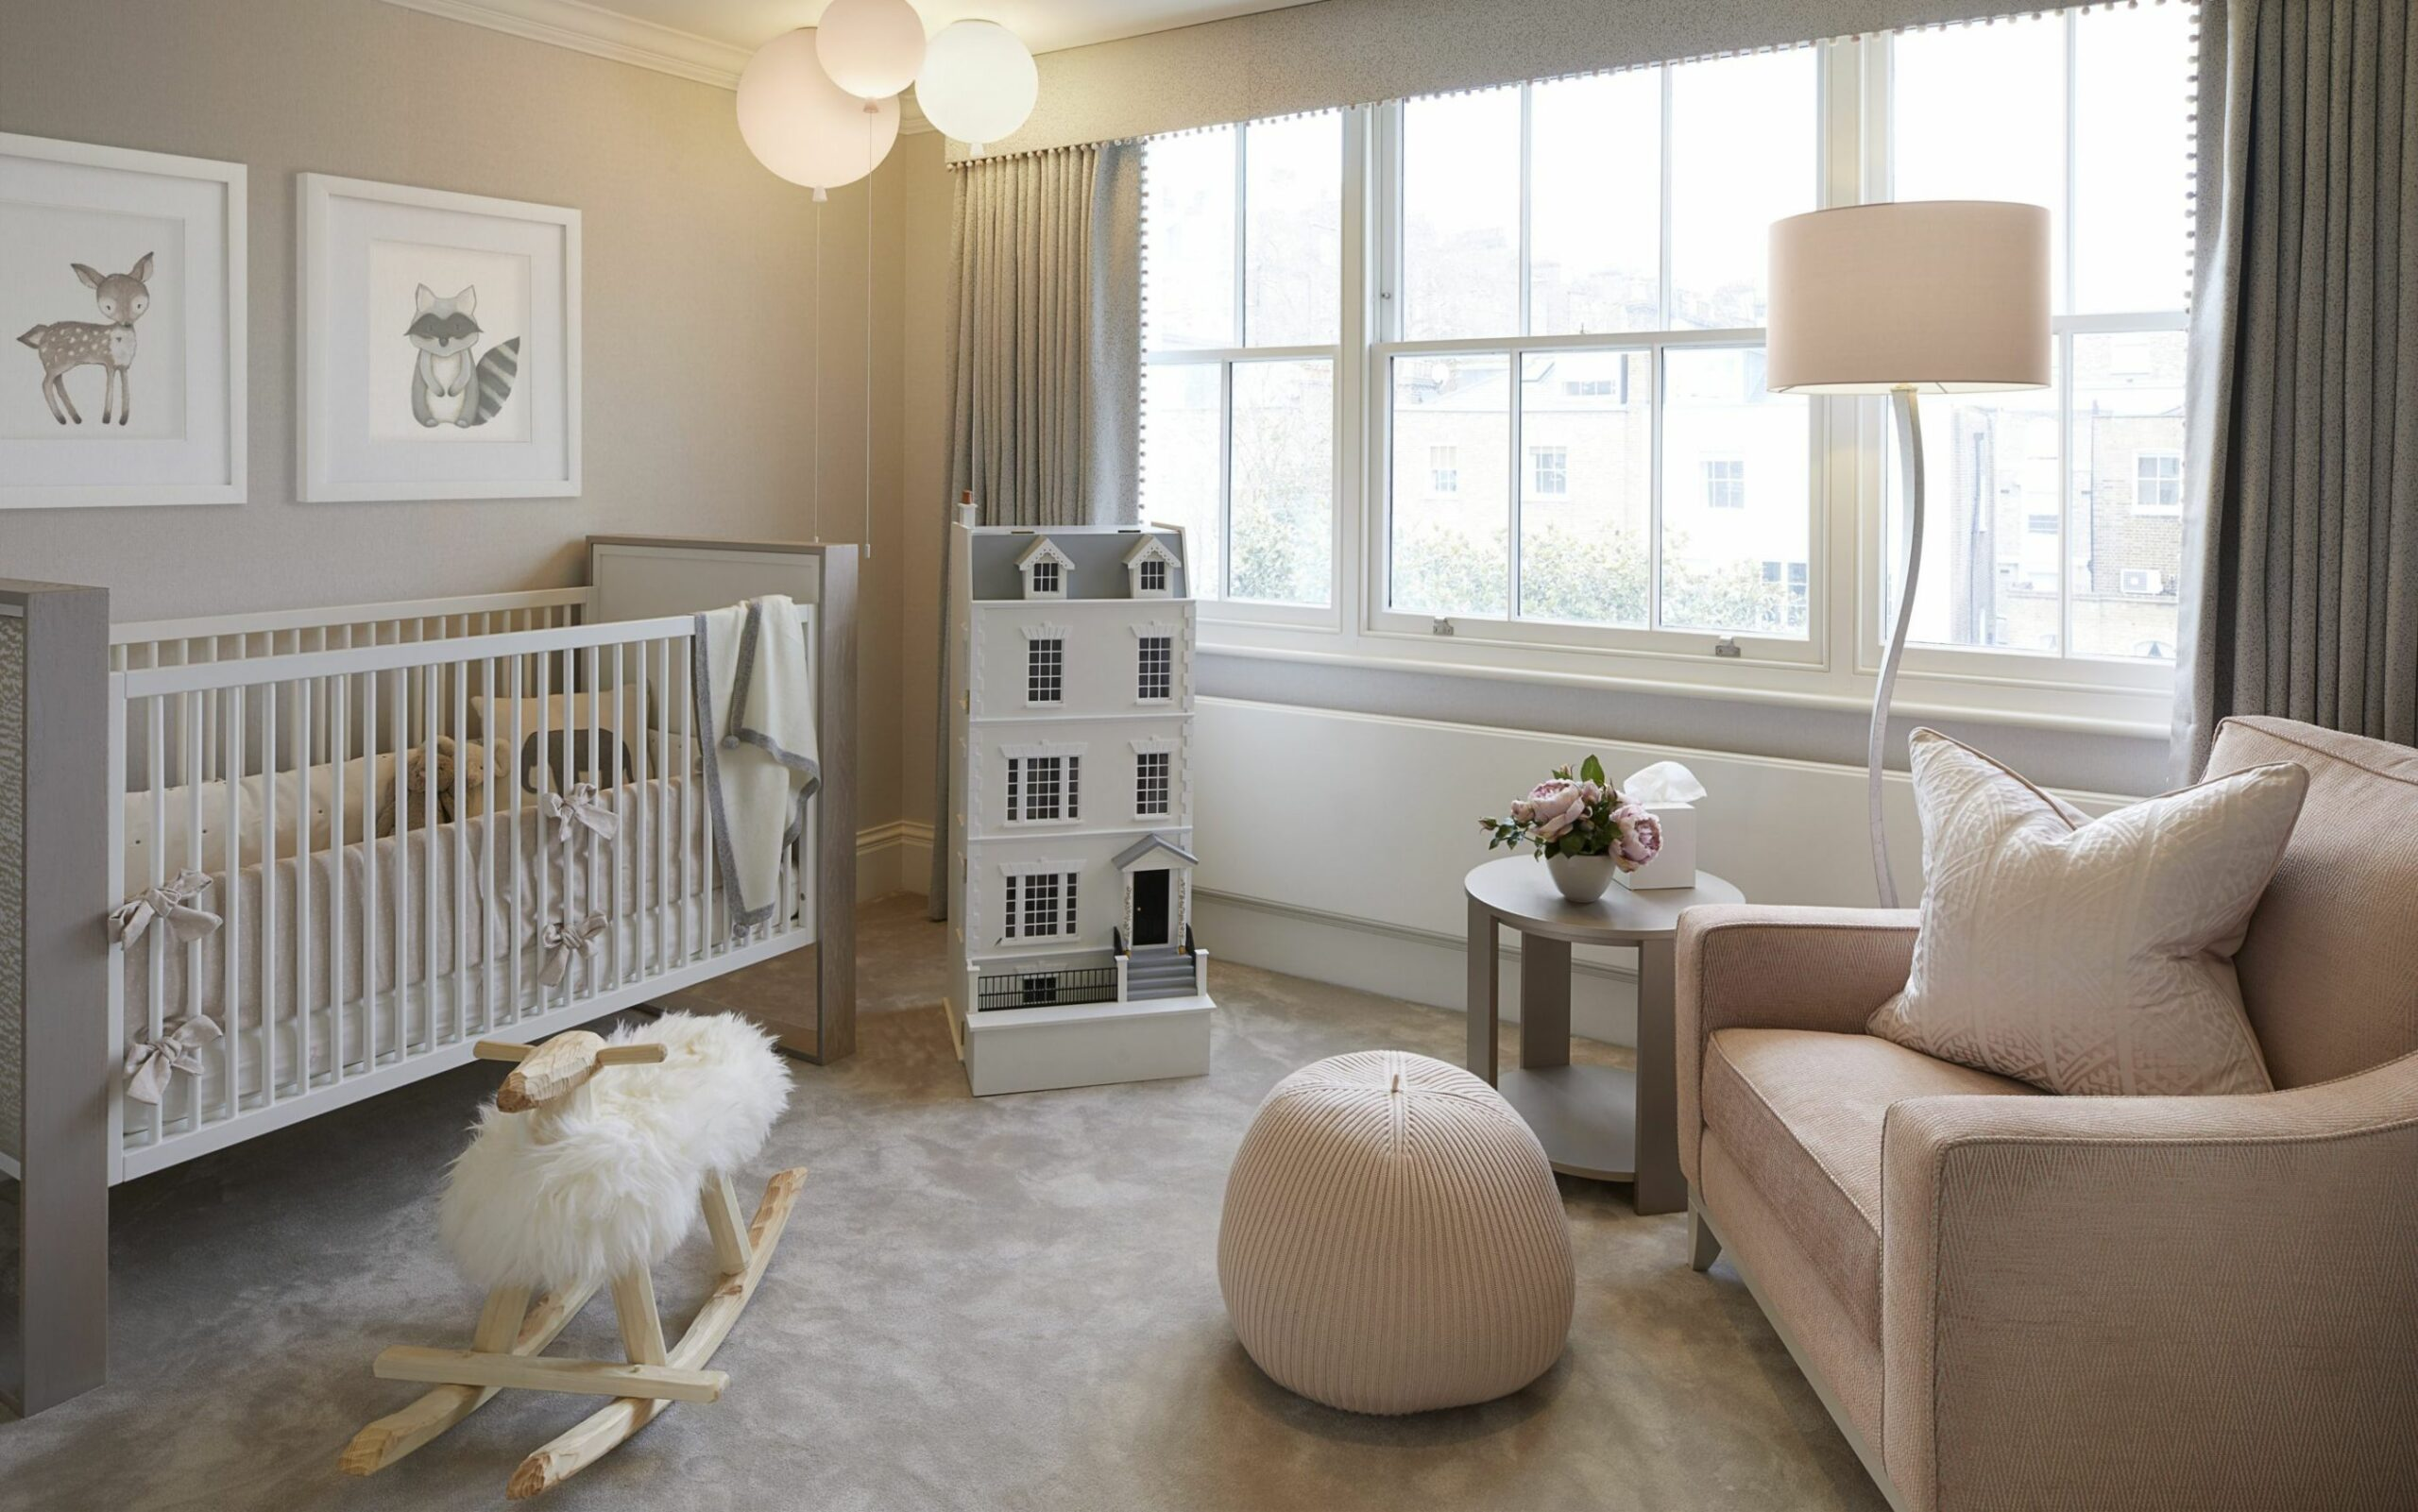 Baby Room Ideas | How To Decorate Your Nursery | LuxDeco.com